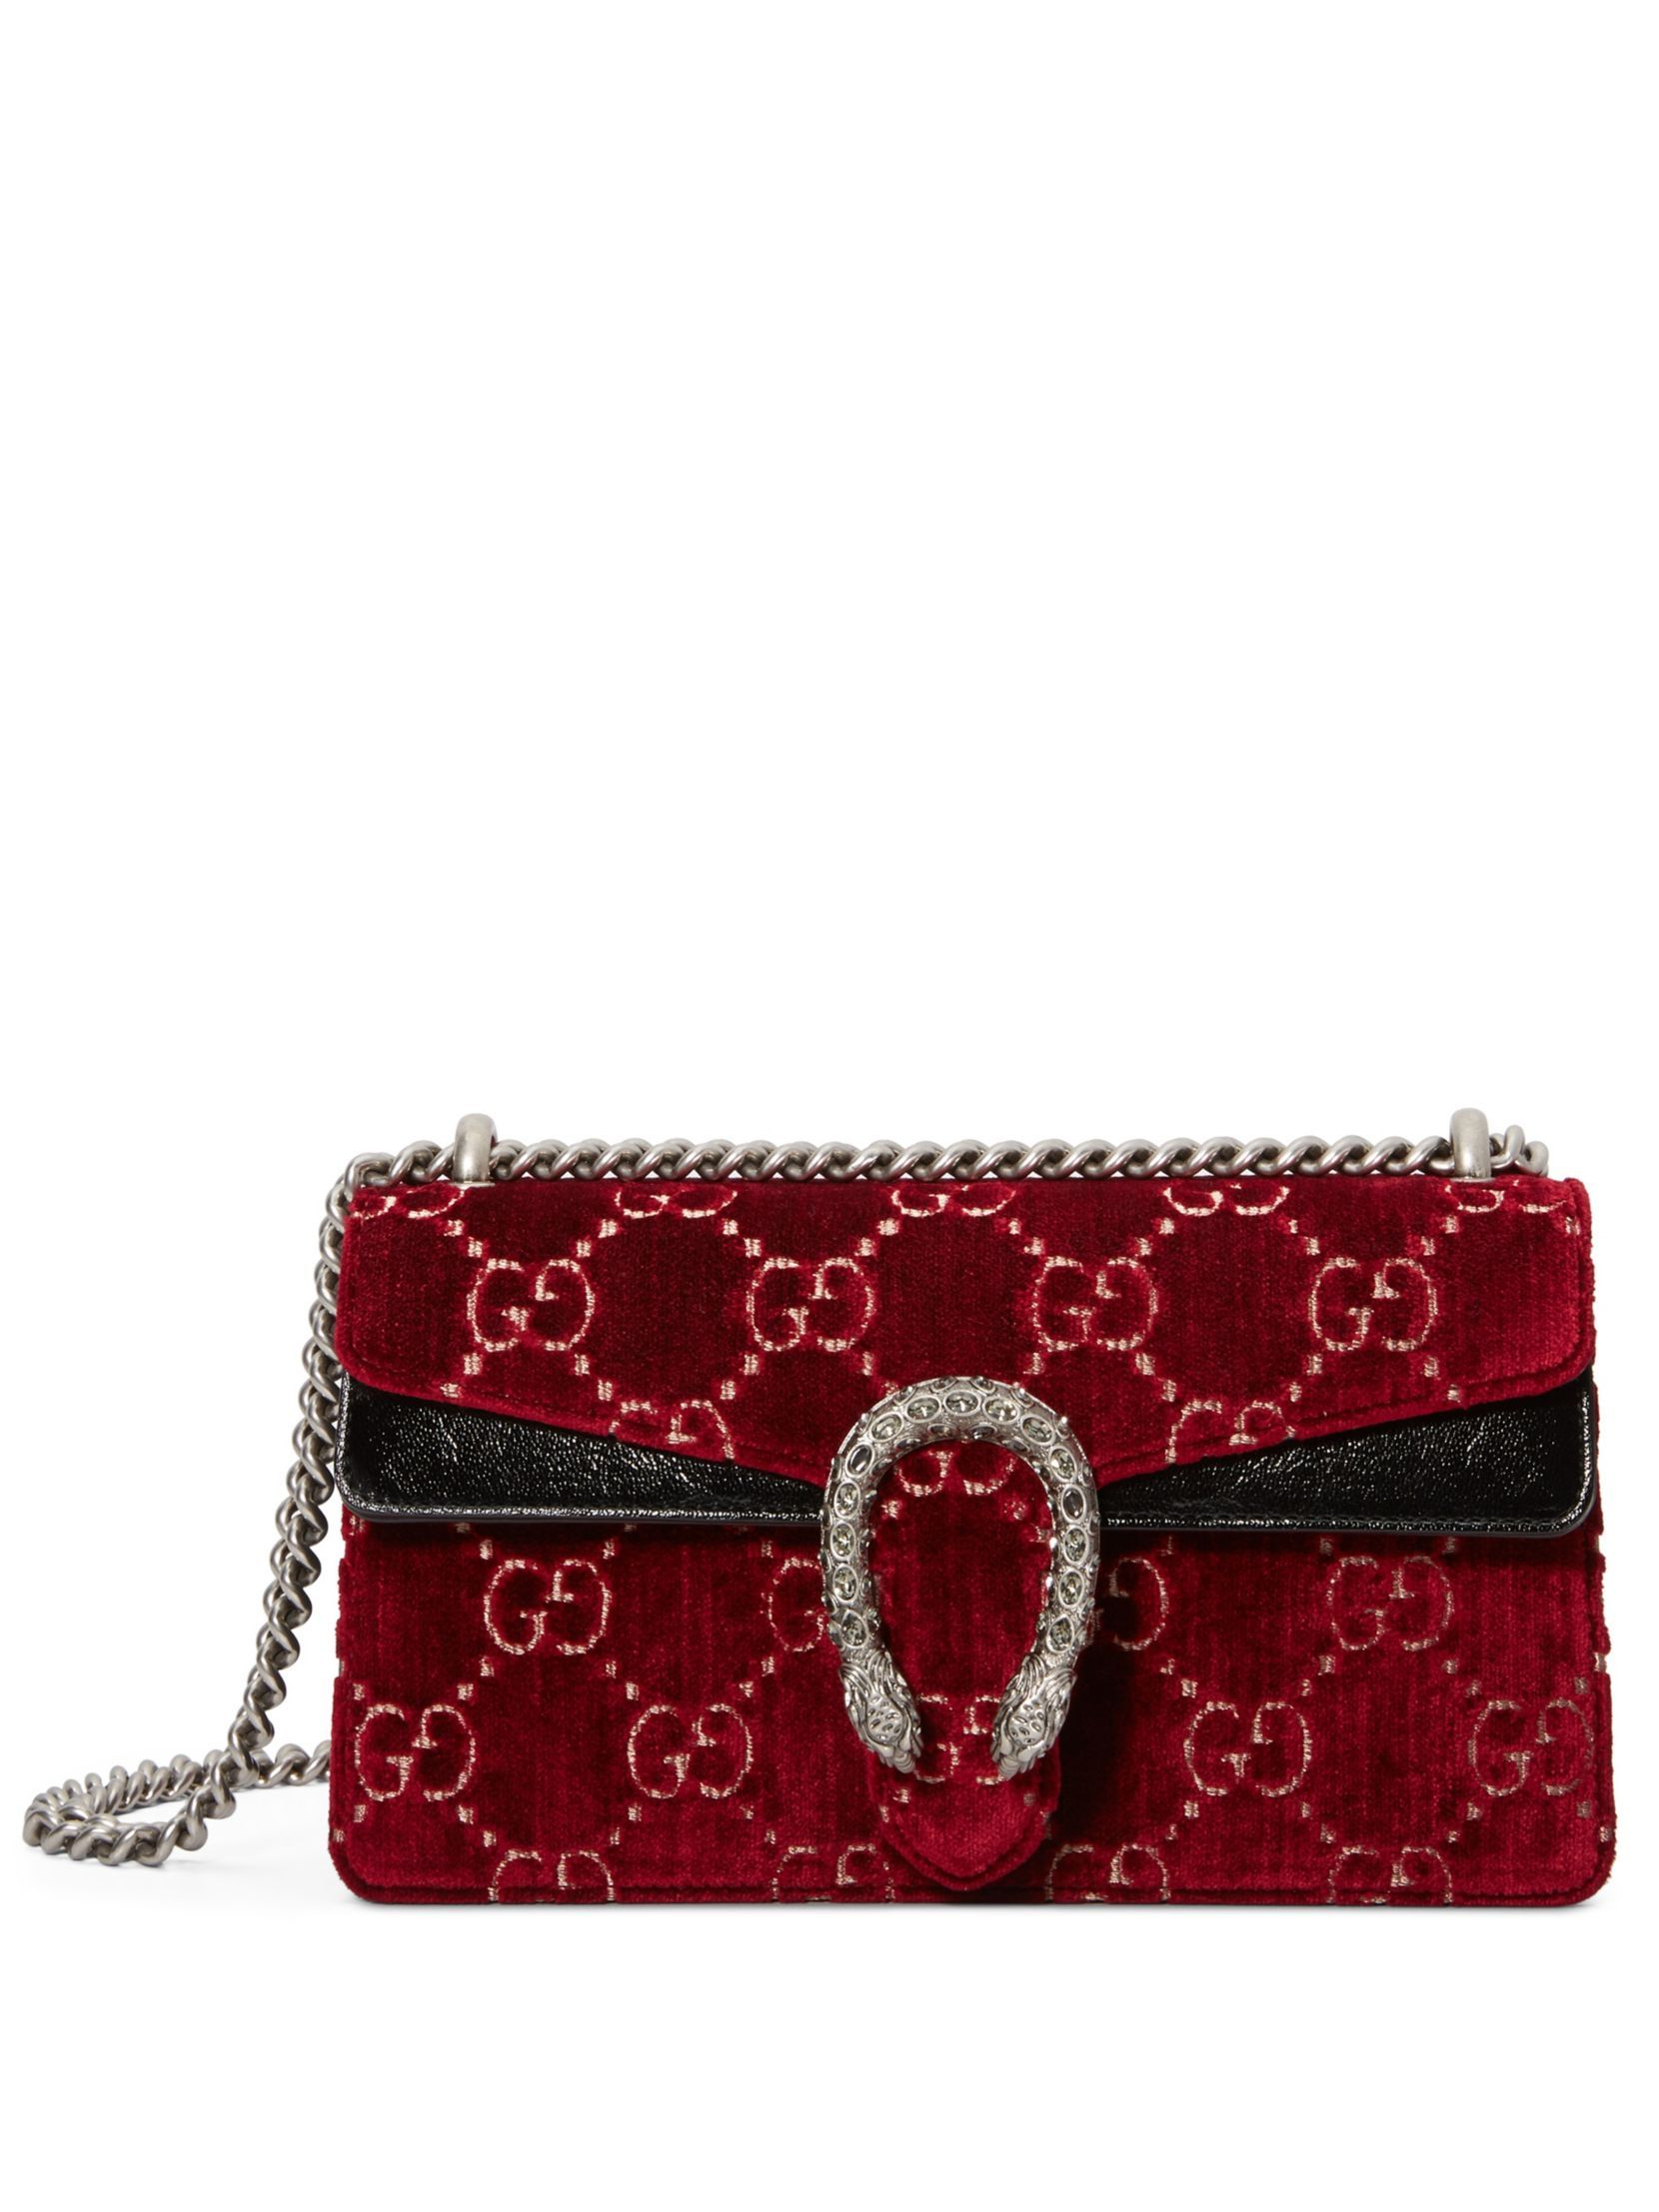 cab54d2b3cc7 Gucci Dionysus GG Velvet Small Shoulder Bag | I love purses/handbags ...